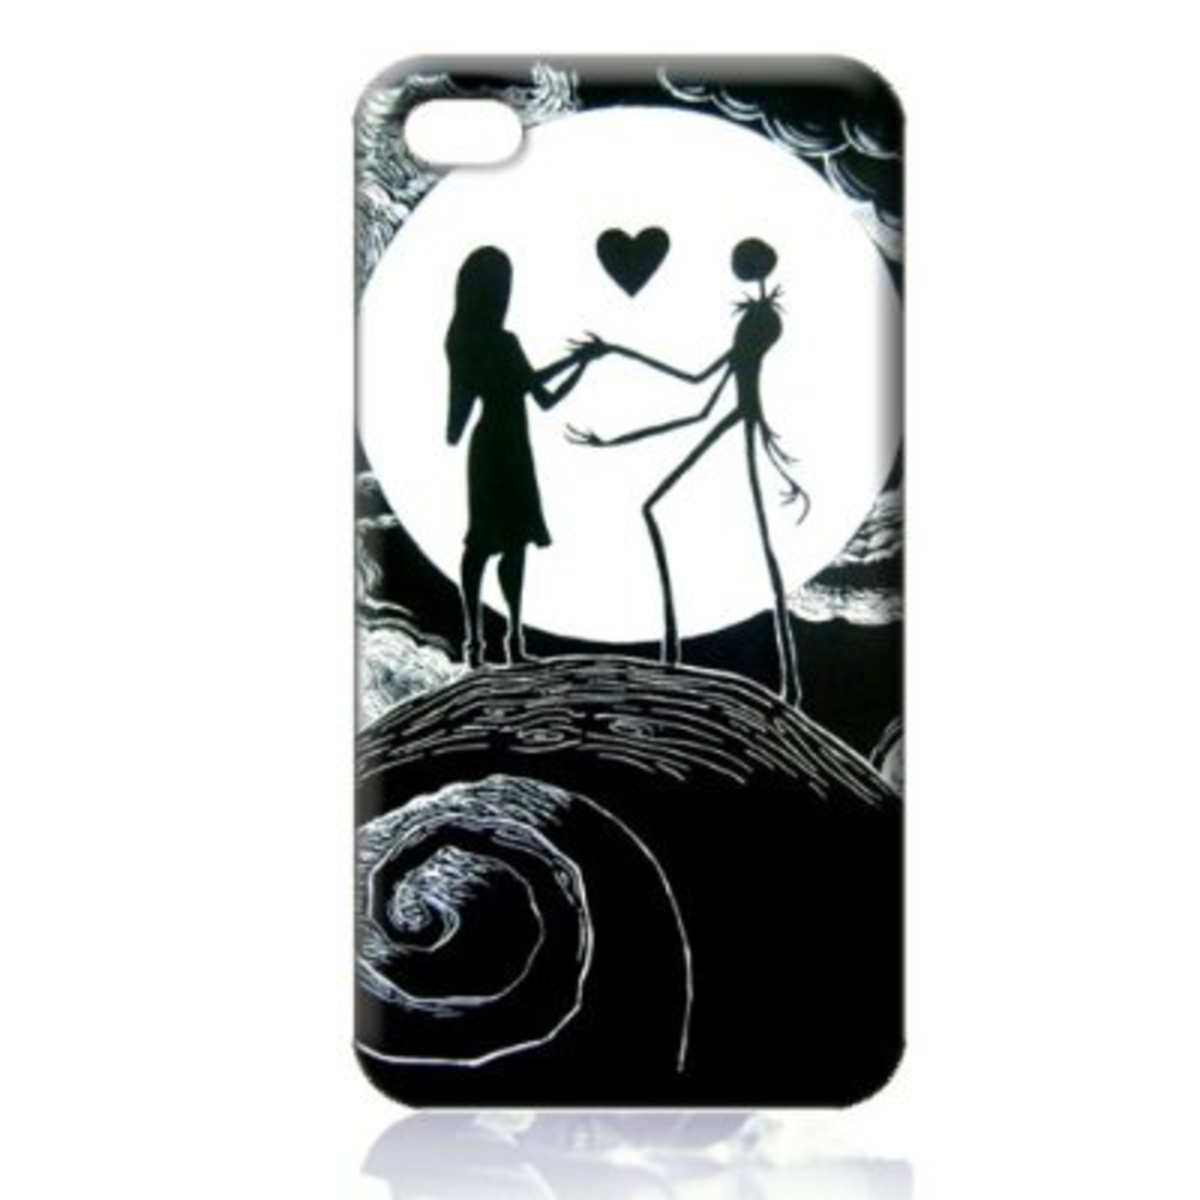 Nightmare Before Christmas Hard Case Skin for Iphone 5 At&t Sprint Verizon Retail Packaging